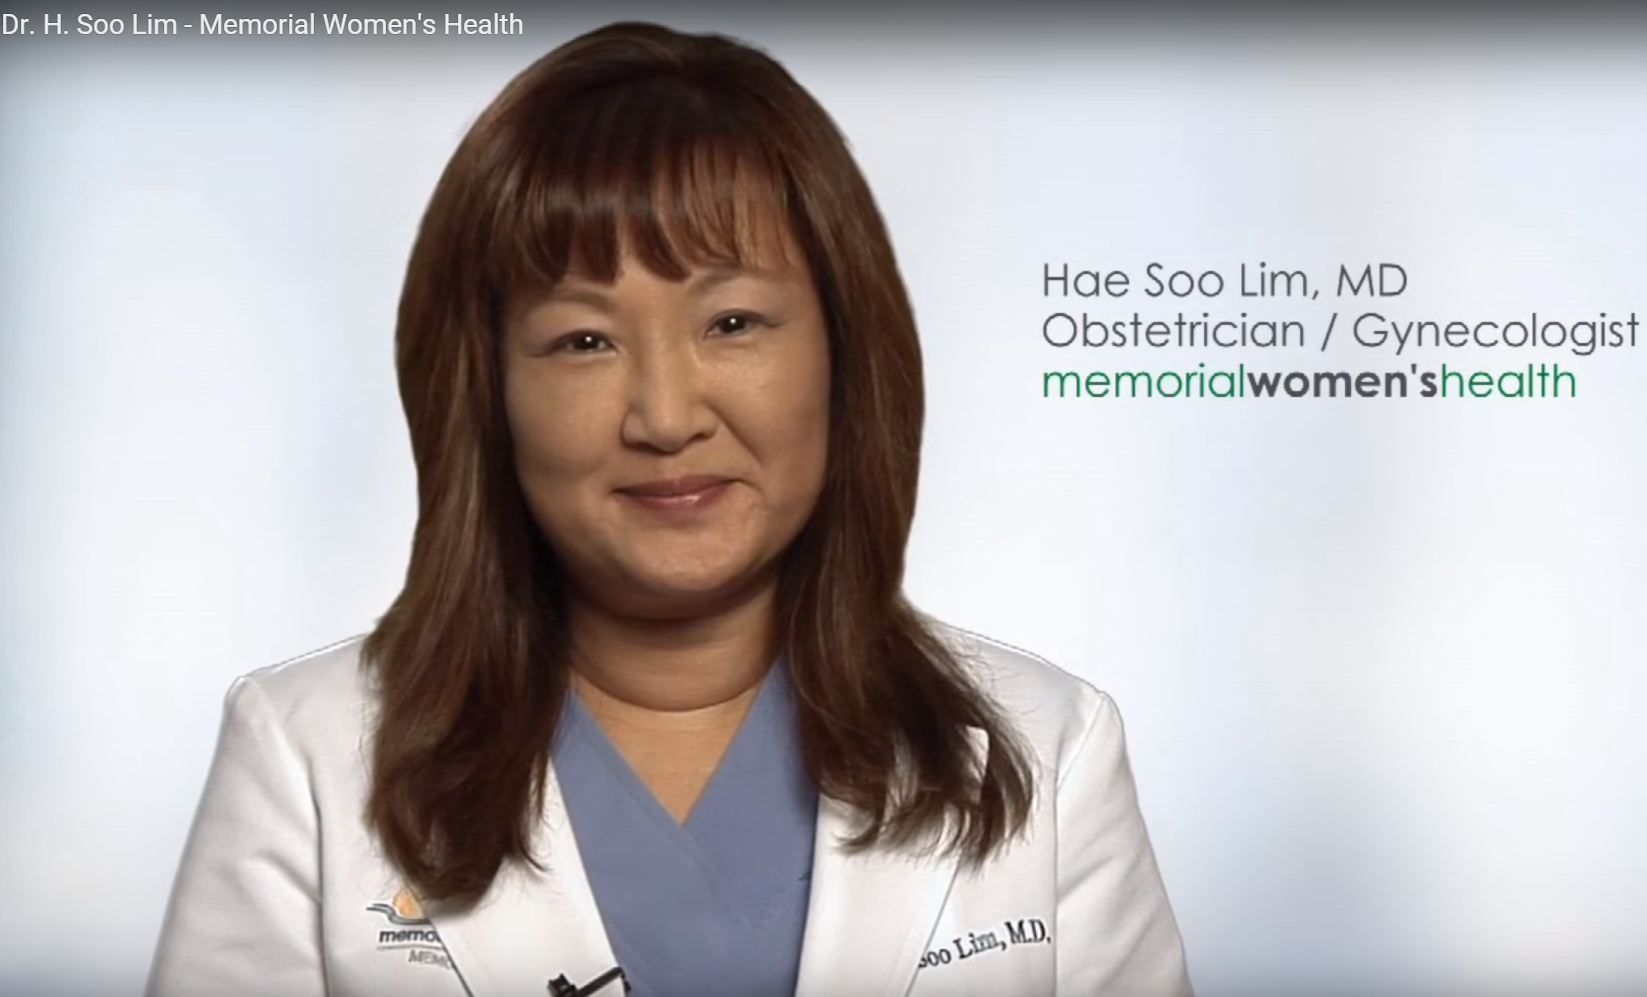 Dr. Lim talks about her practice